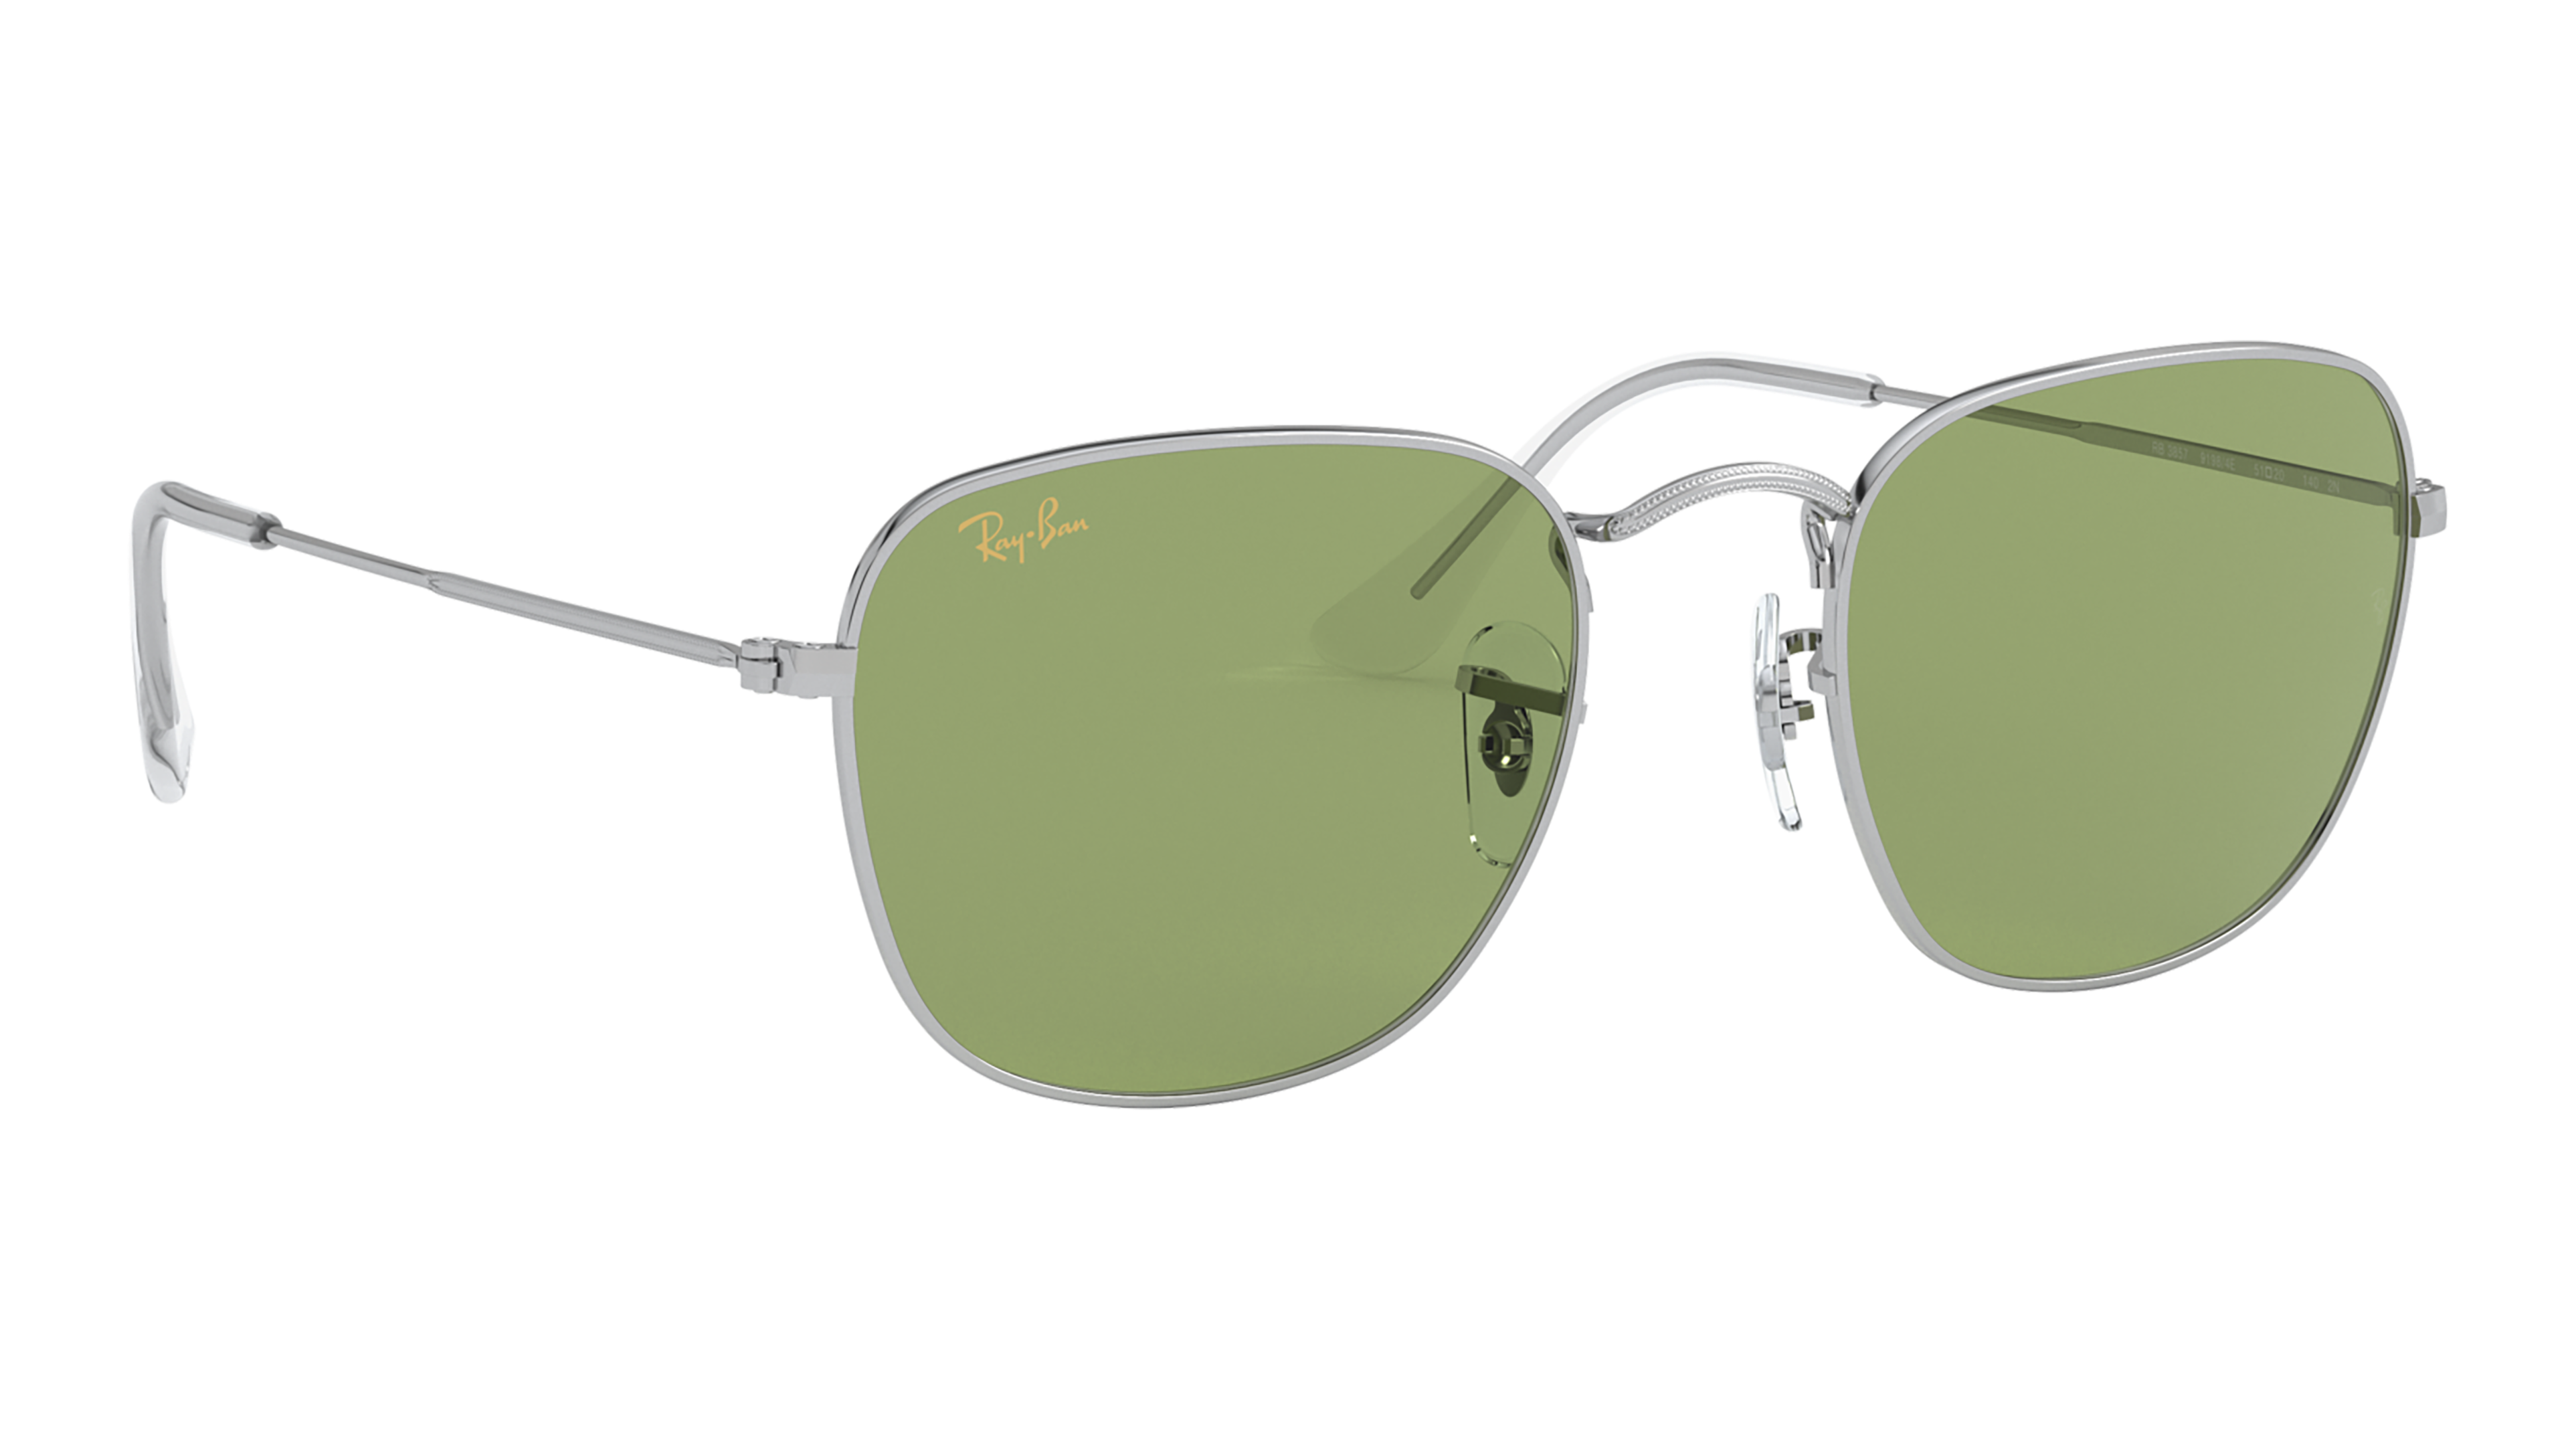 Angle_Right02 Ray-Ban Ray-Ban 0RB3857 91984E 51/20 Zilver/Groen